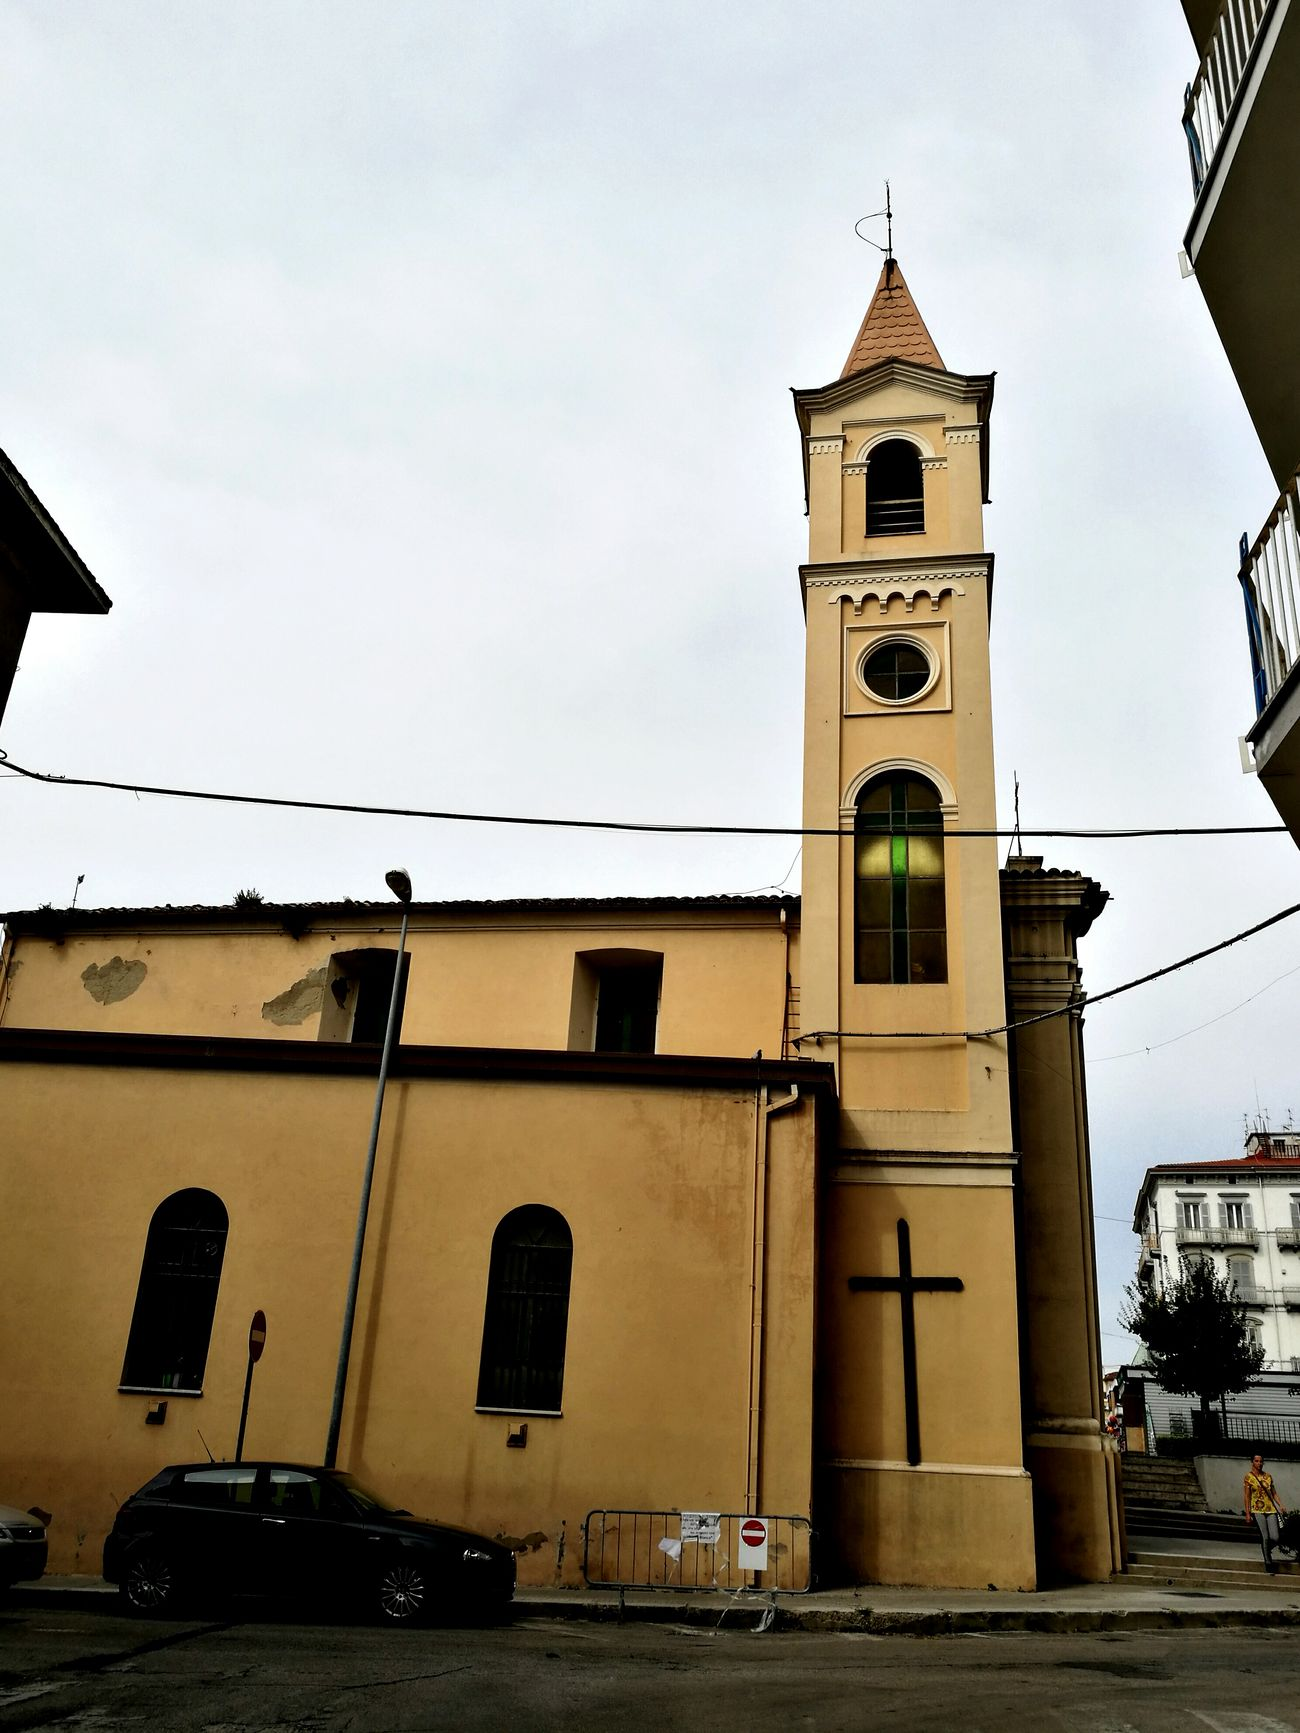 Architecture Bell Tower - Tower Bell Tower Tall - High Tower Streetviewphotography S.Rocco Church